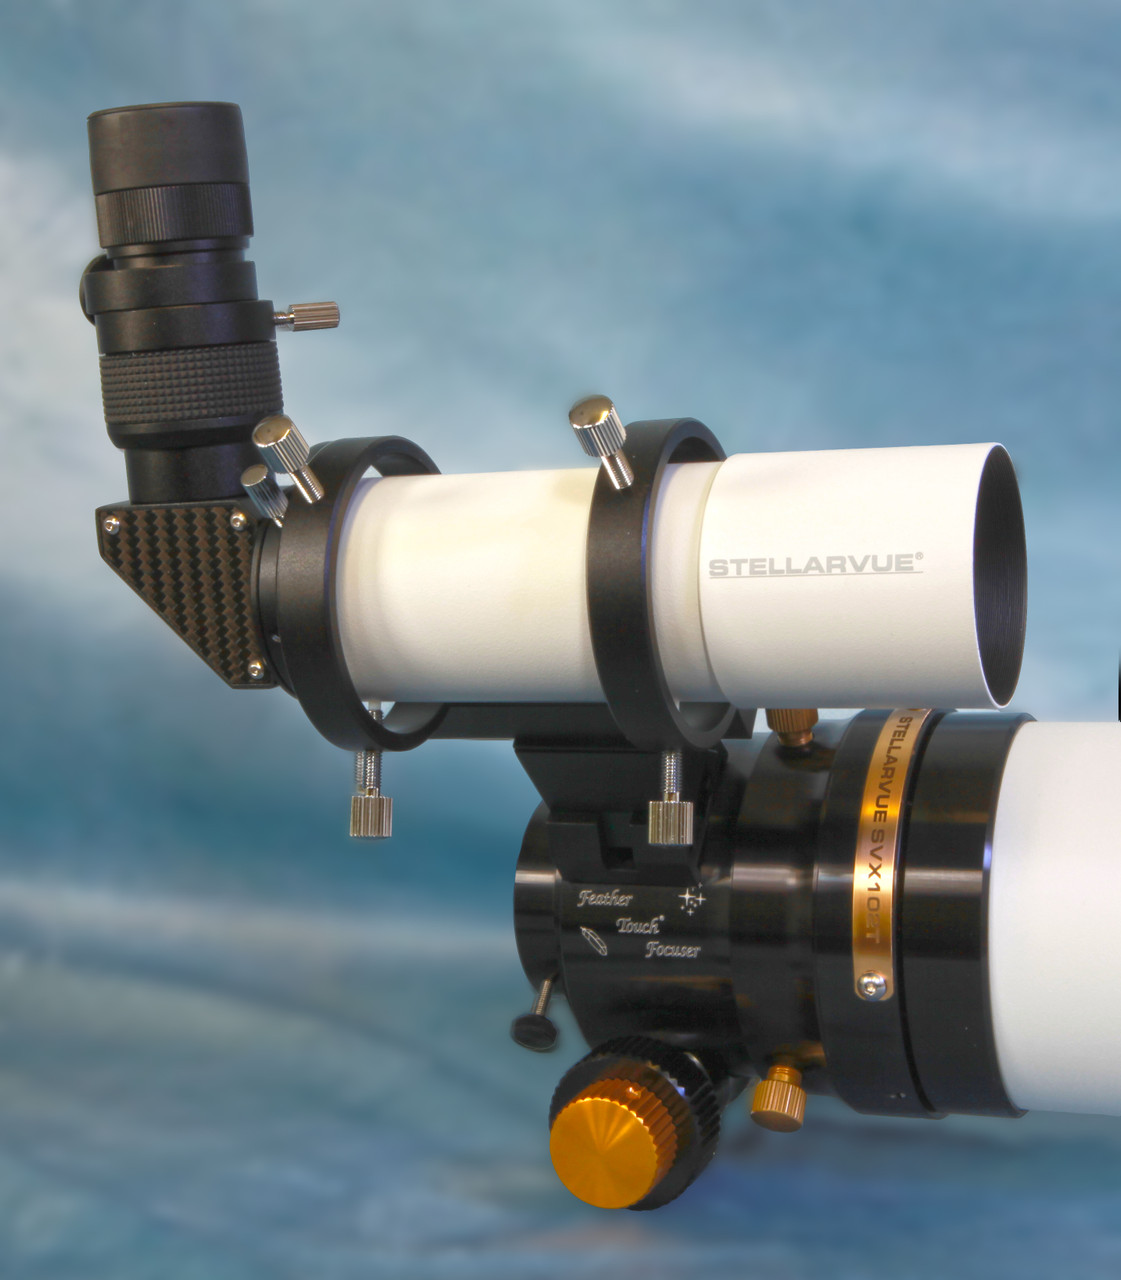 Stellarvue F050IW mounted on Feather Touch focuser